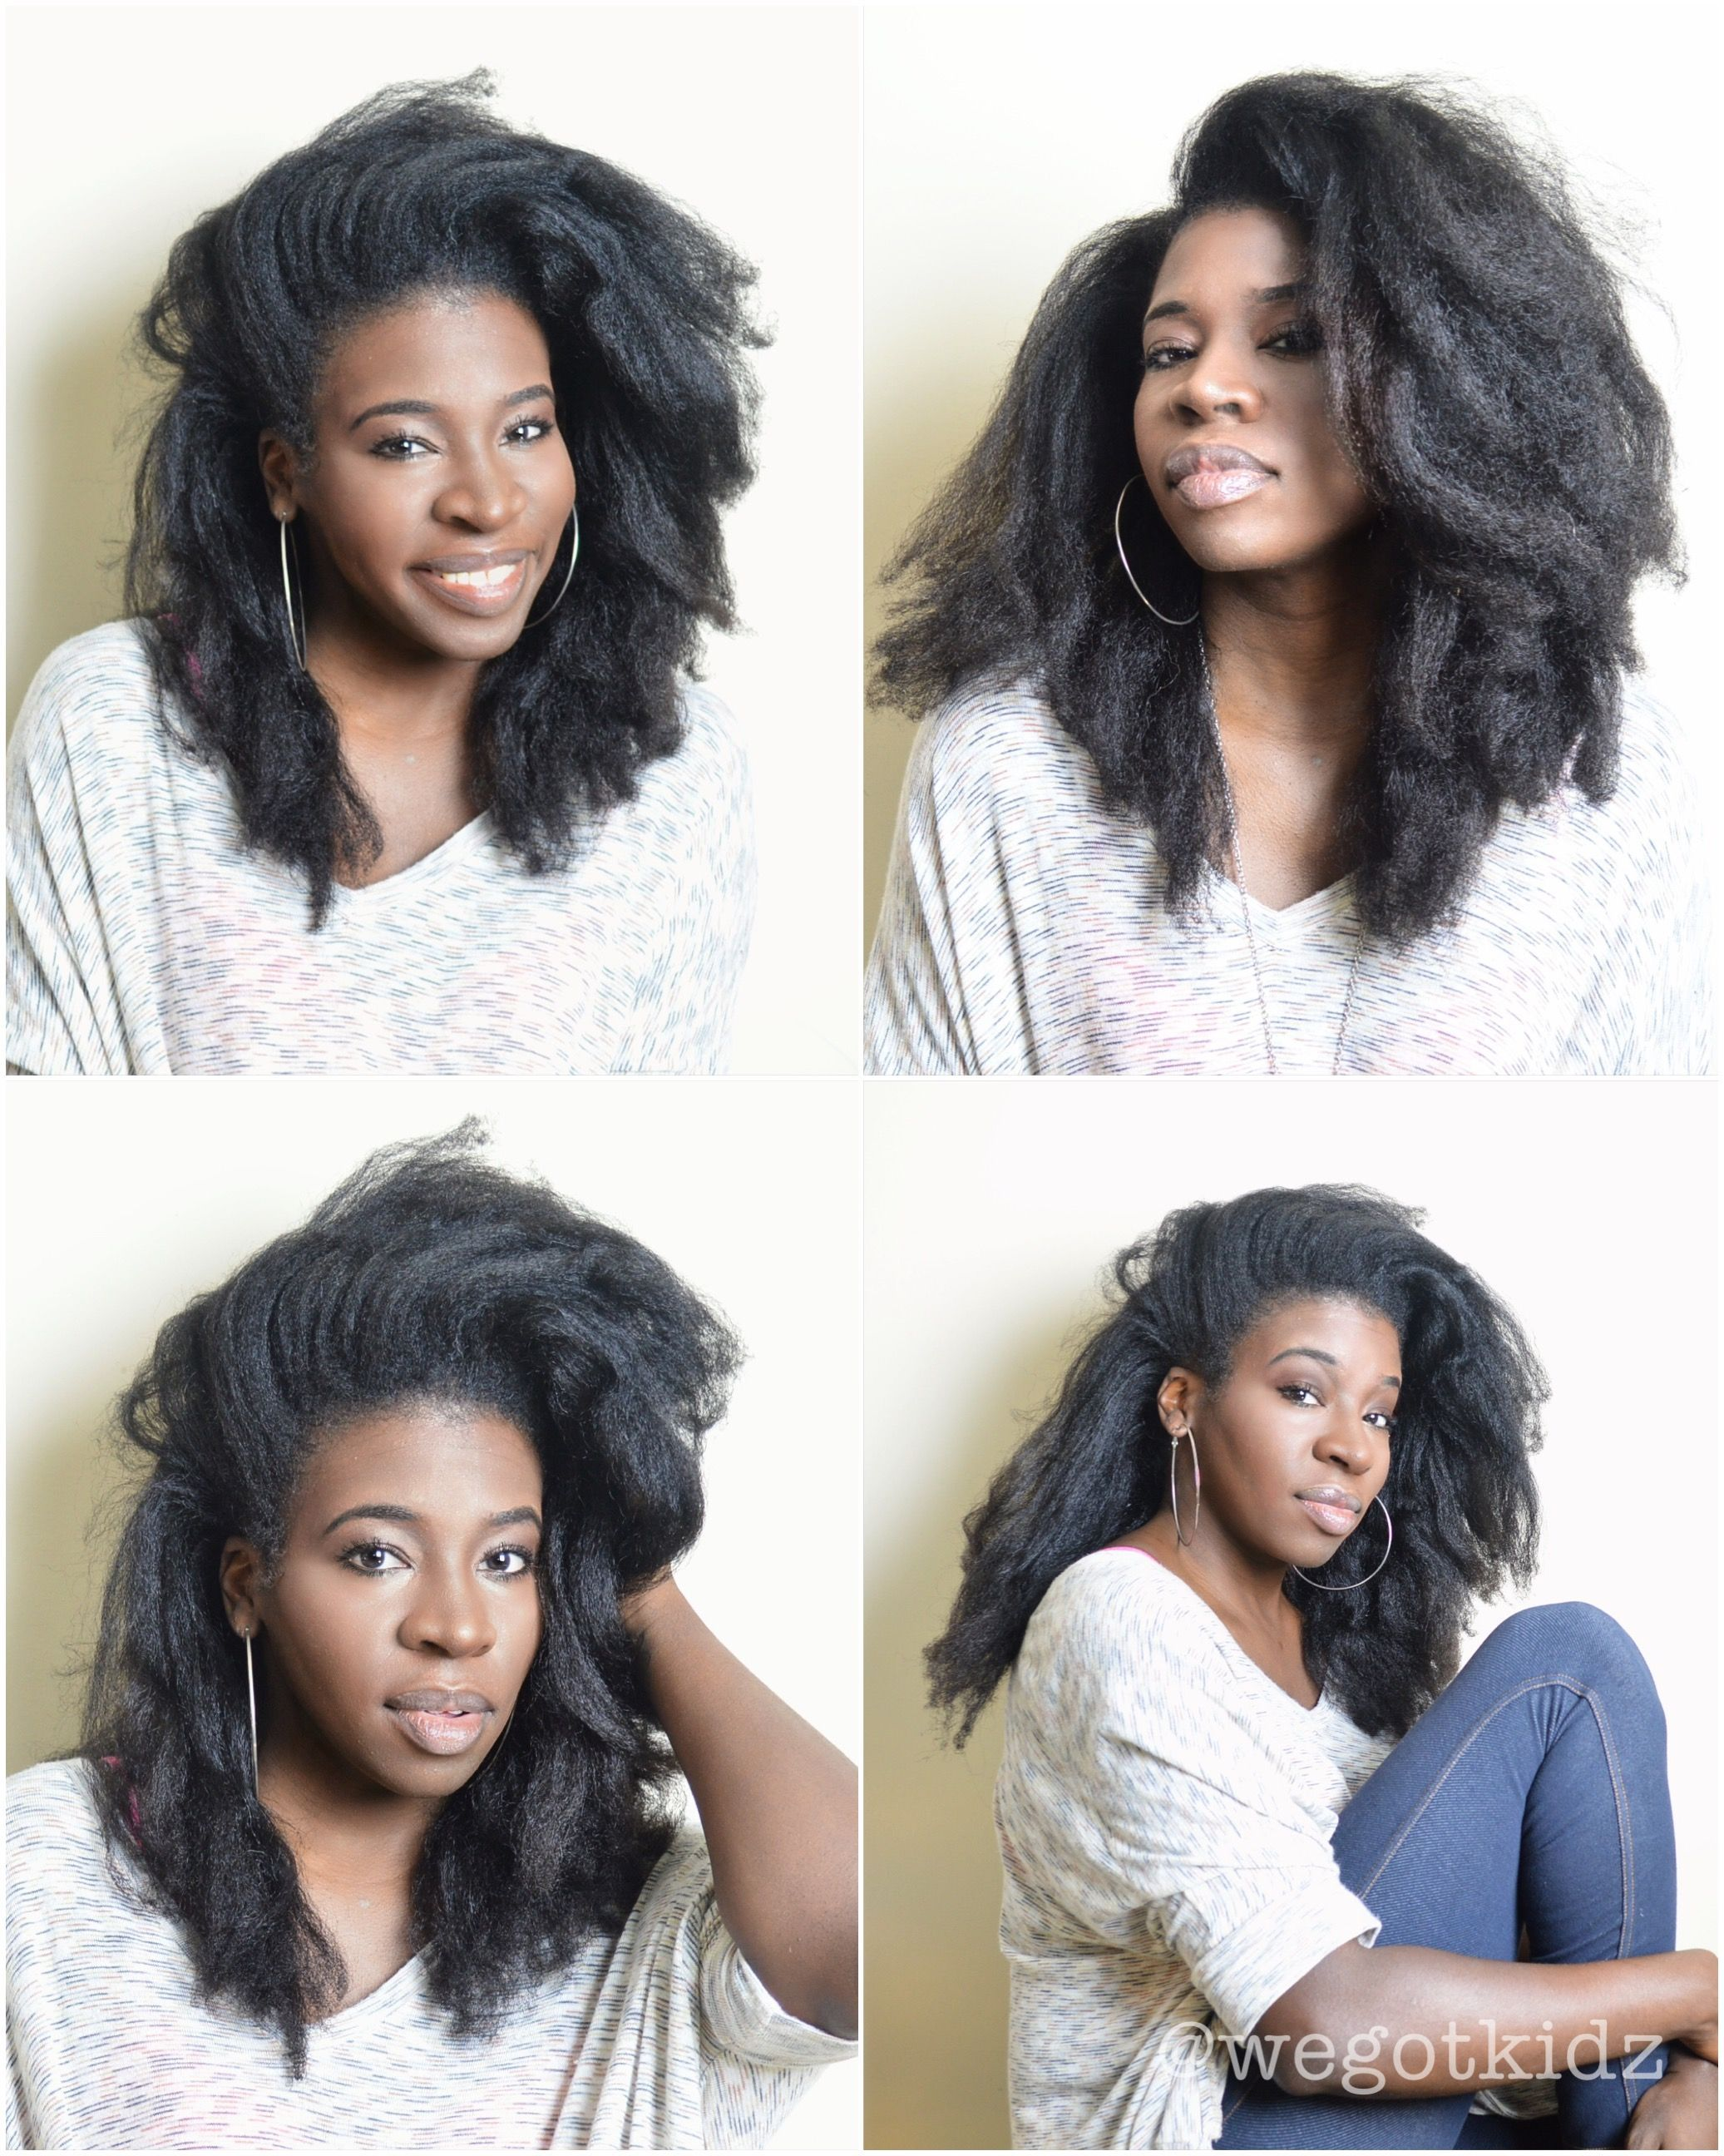 Naturalhair Crush 4c Hair Blow Dried Using The Tension Method And Then Flat Ironed One Pass Medium Heat Hair Styles Natural Hair Blowout Blowout Hair